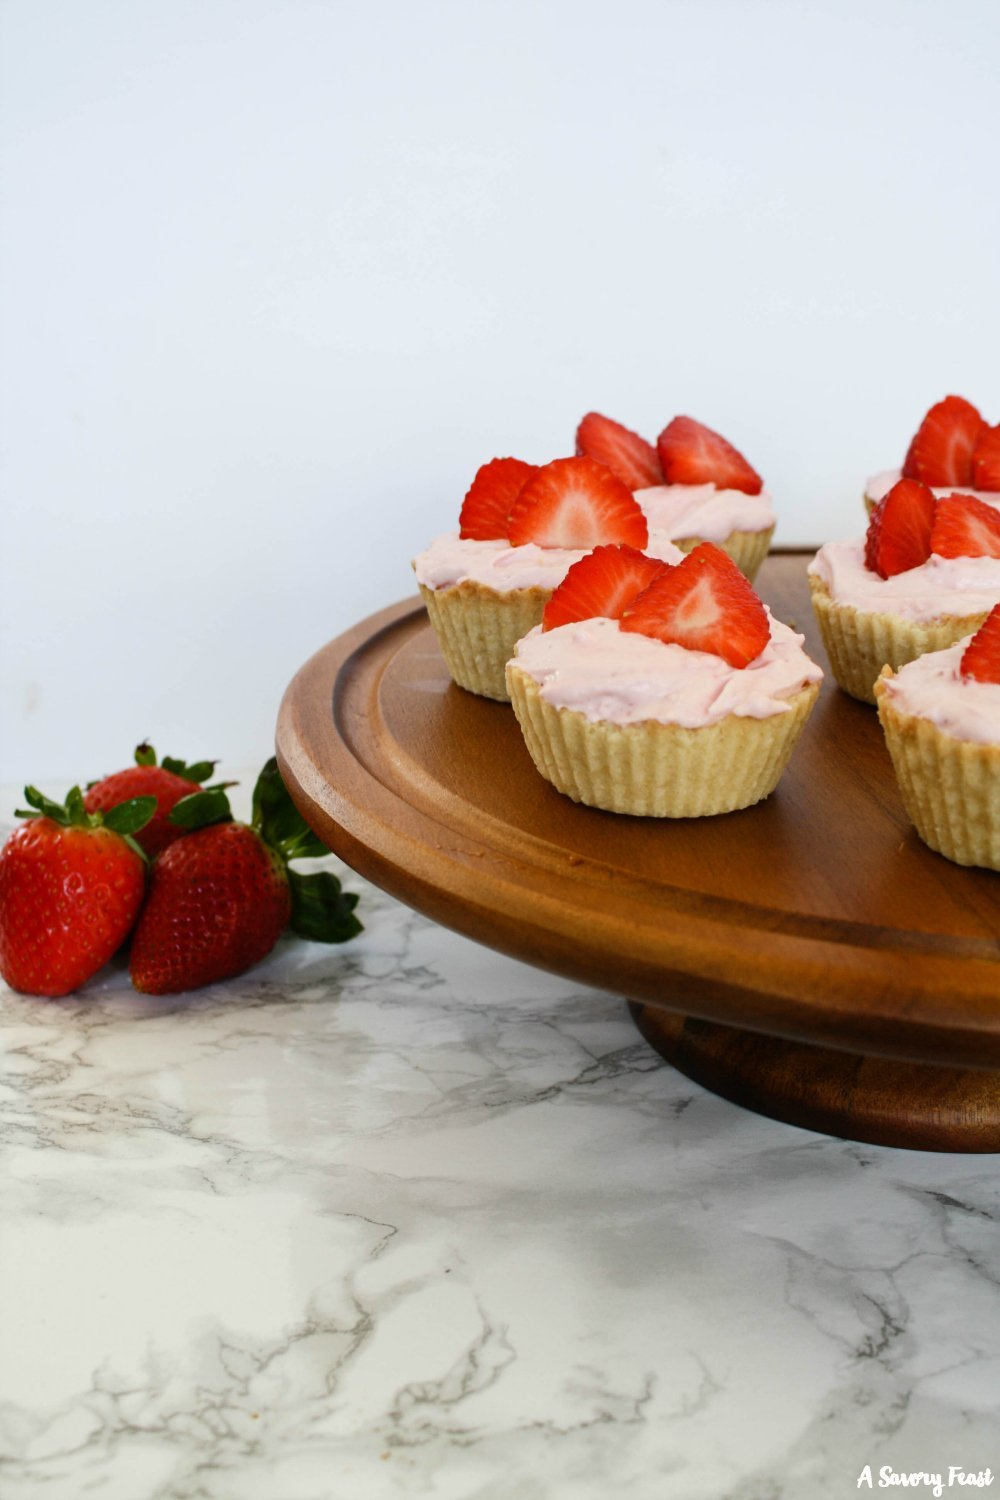 A sweet and simple dessert for Spring parties, showers, Easter gatherings and more. Mini Strawberry Mousse Tarts